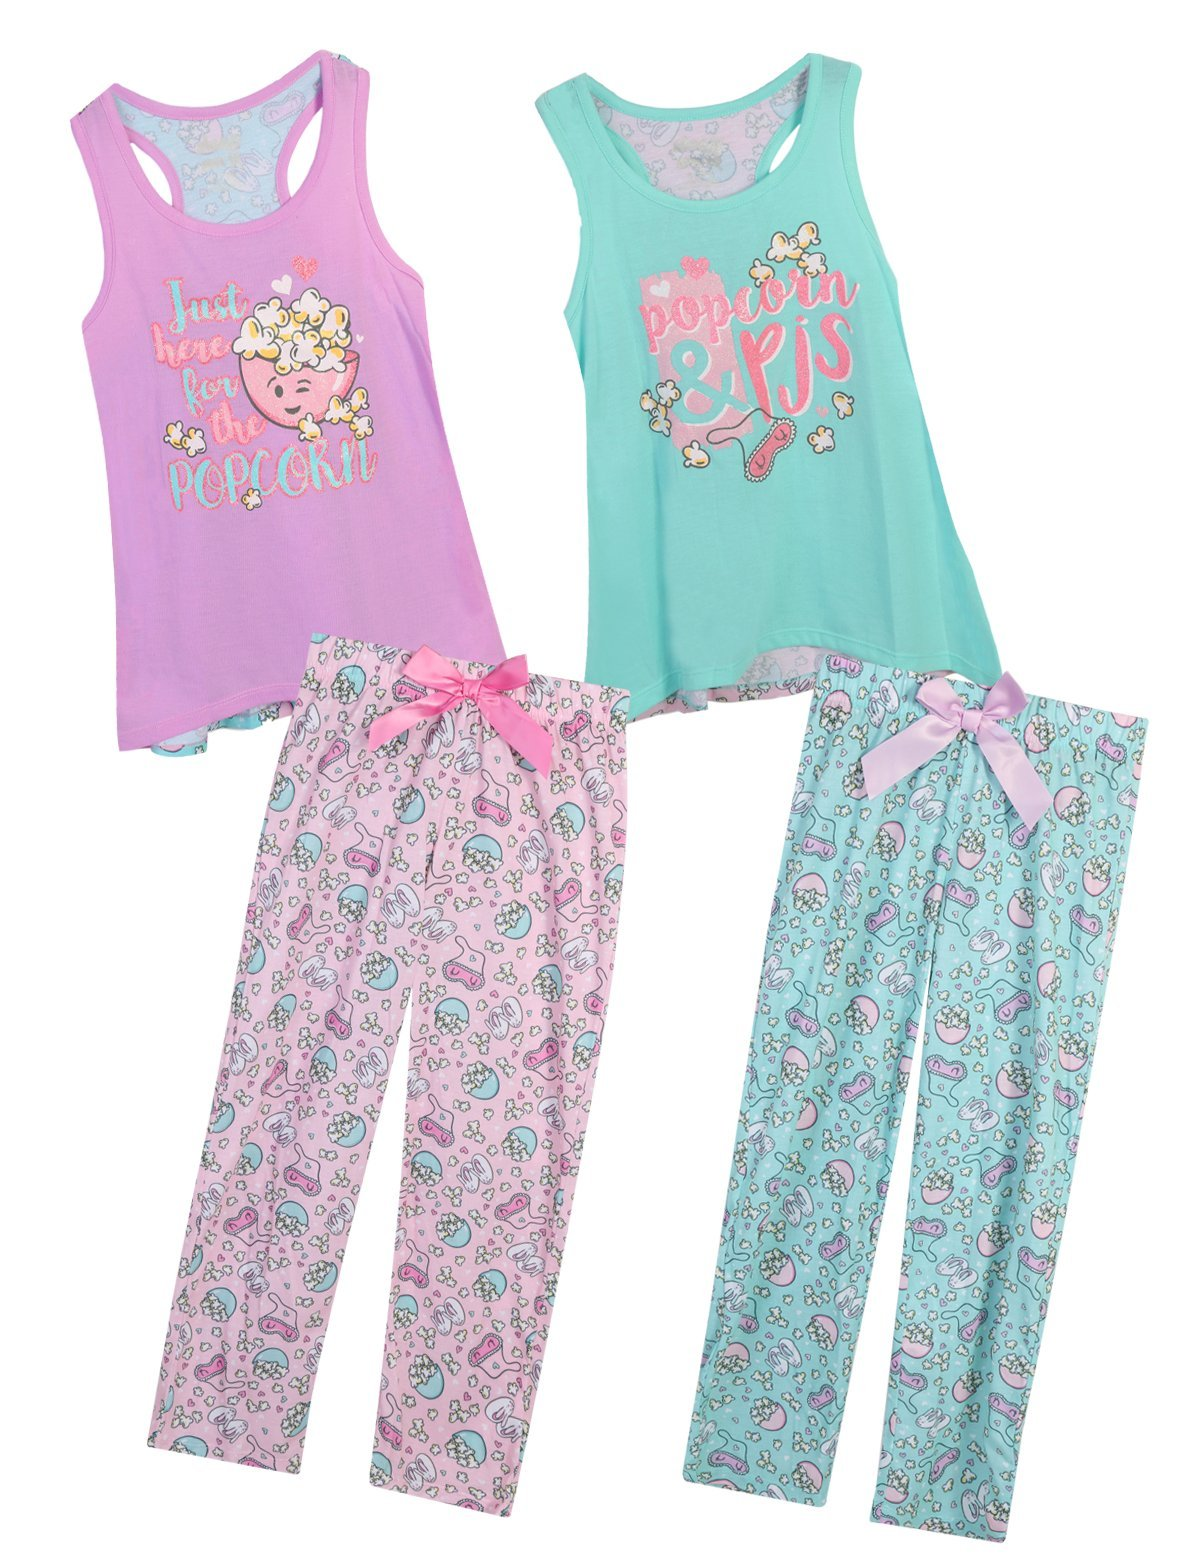 Sleep On It Girls 4 Piece Tank Top and Pant Spring Pajama (2 Full Sets) Popcorn, Size 10/12'